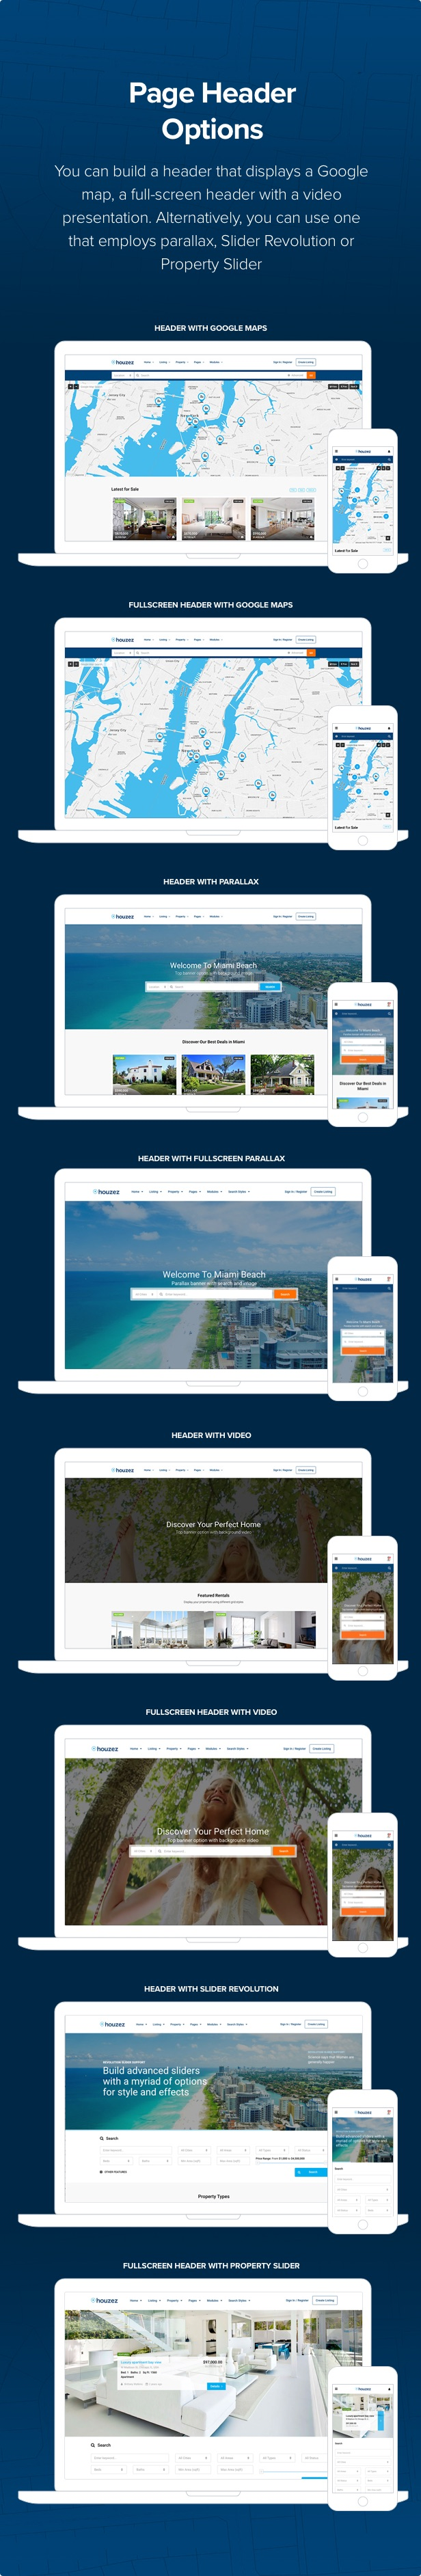 houzez header options 1 6 3 - Houzez – Real Estate WordPress Theme